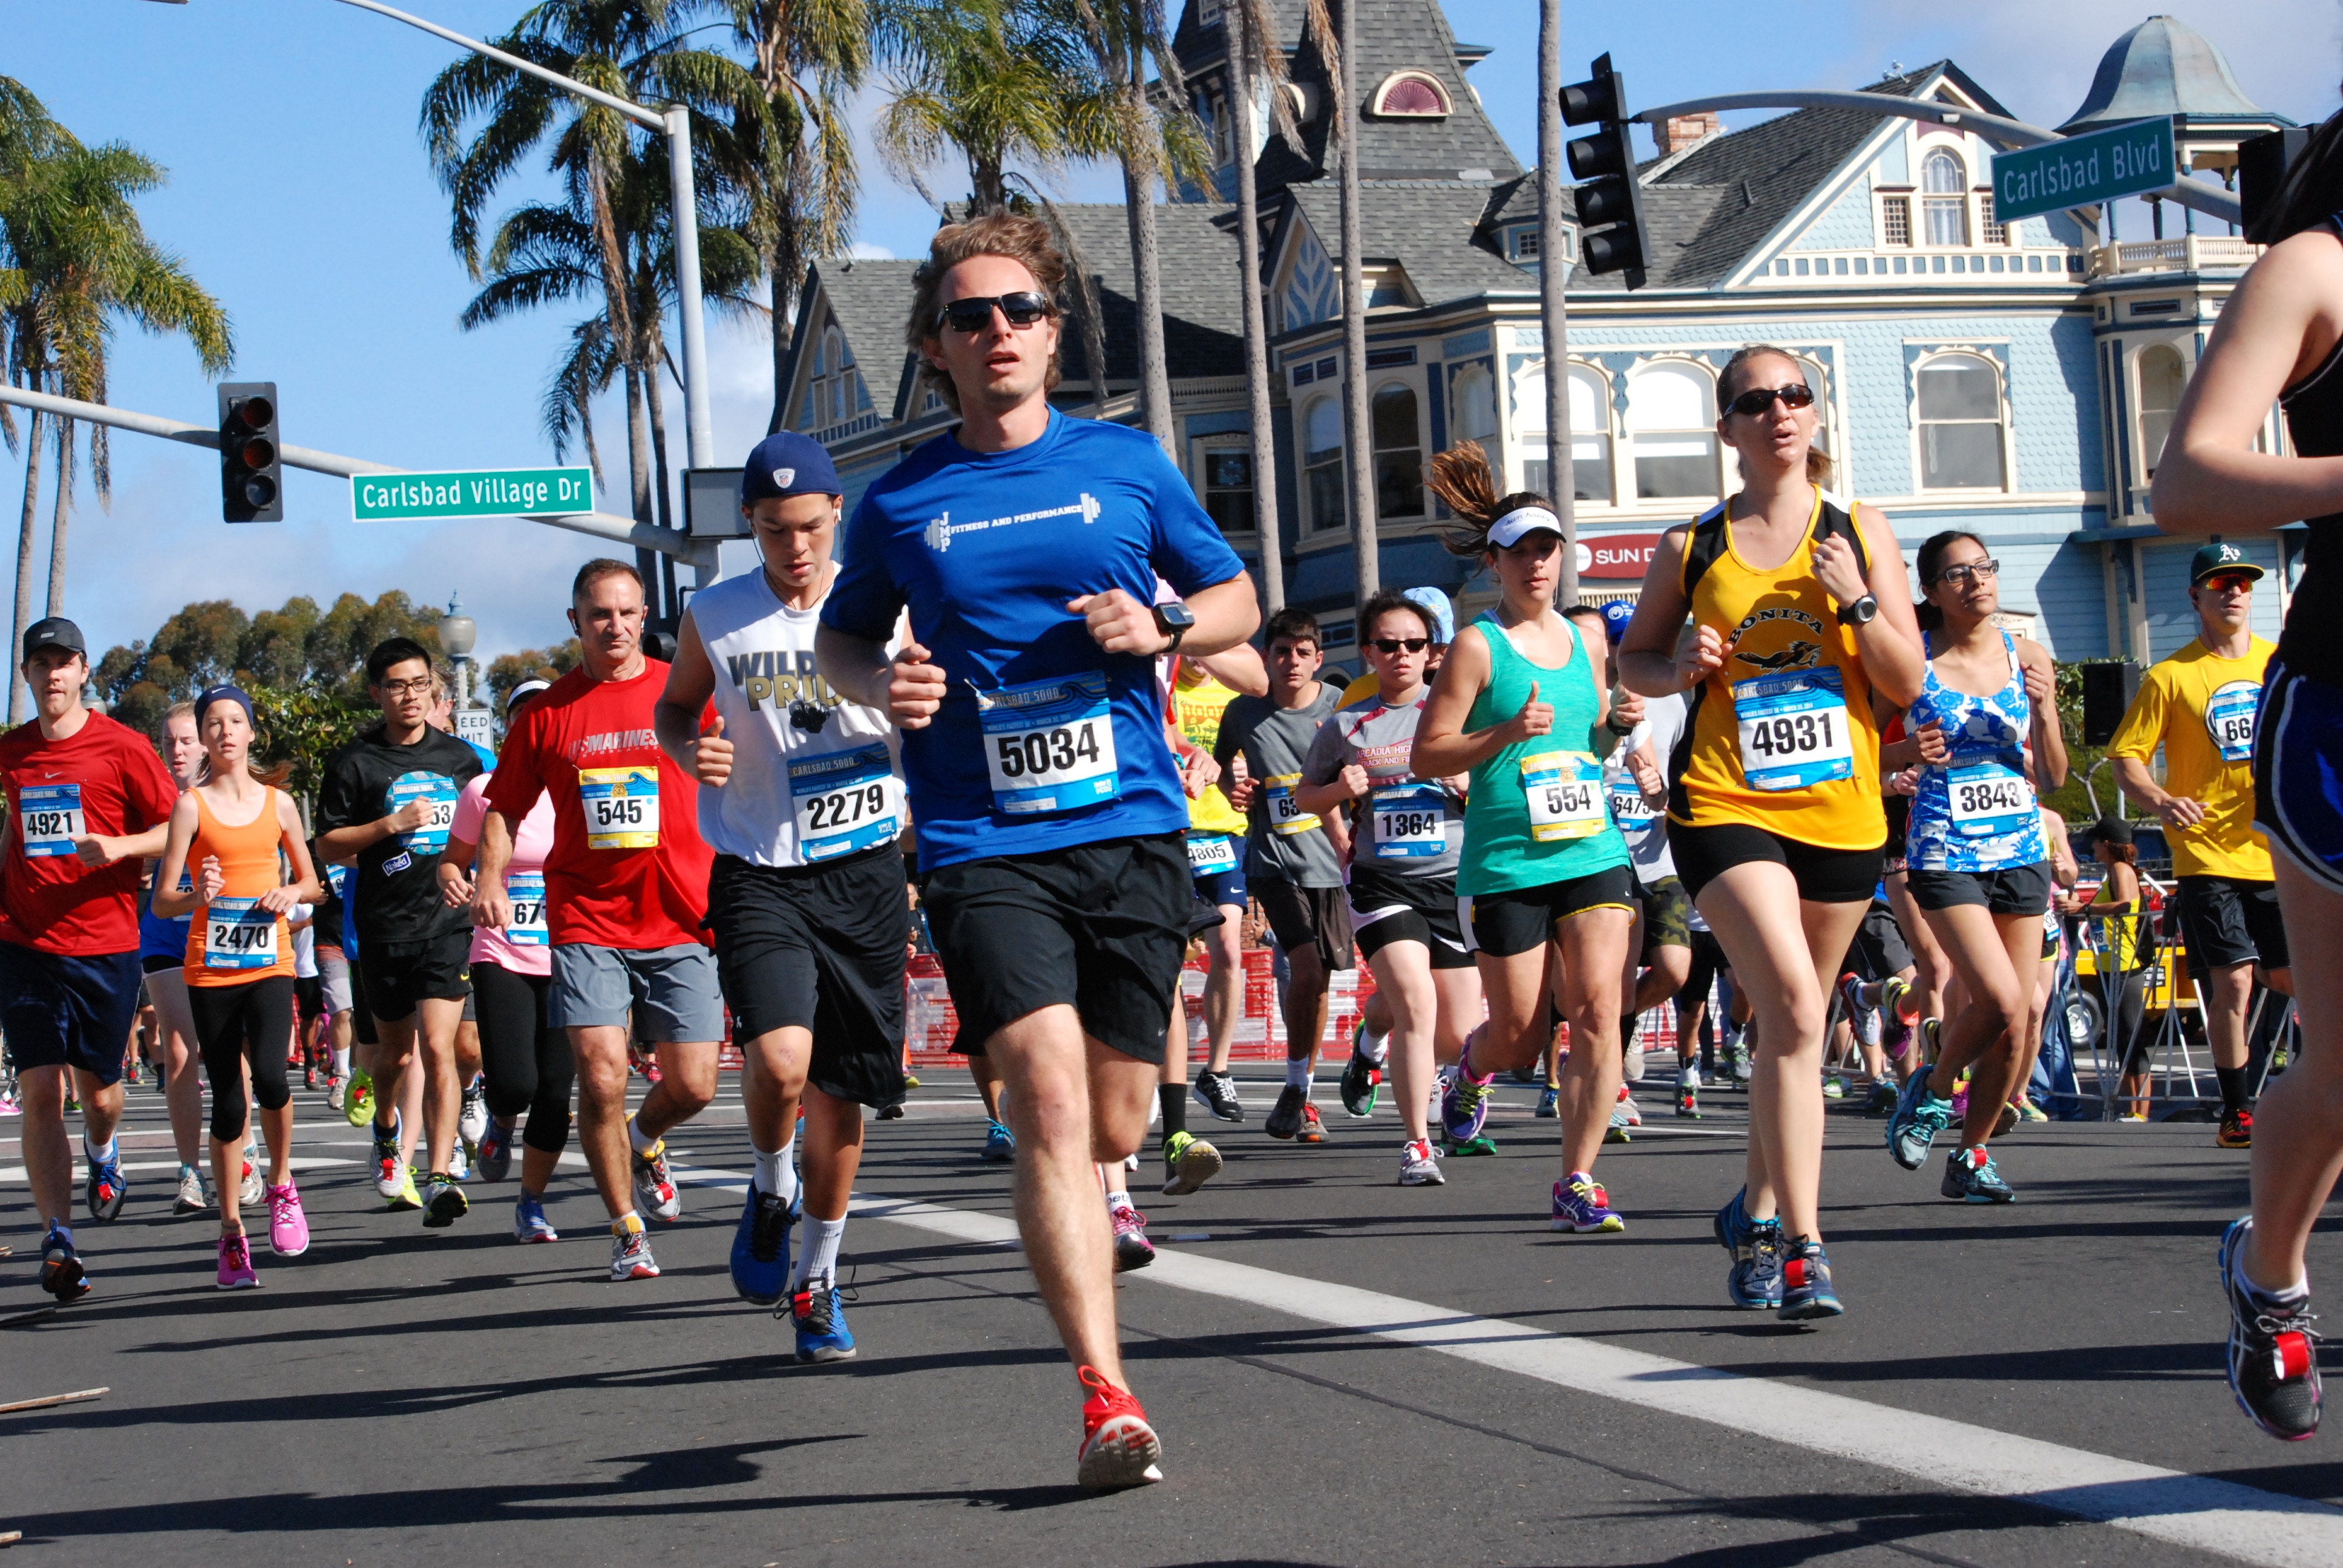 New ownership has been announced for the Carlsbad 5000 being held April 7th